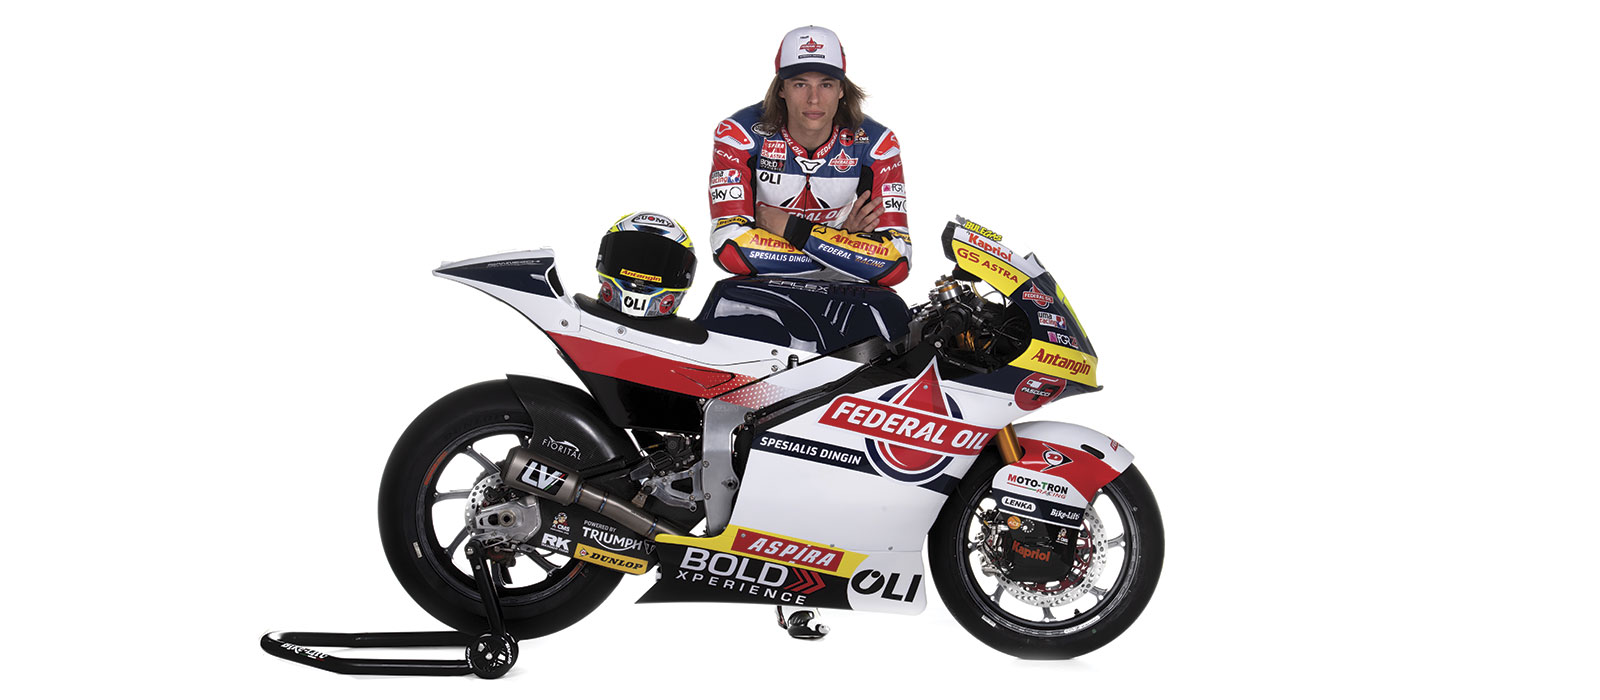 Federal Oil Gresini Moto2 Team